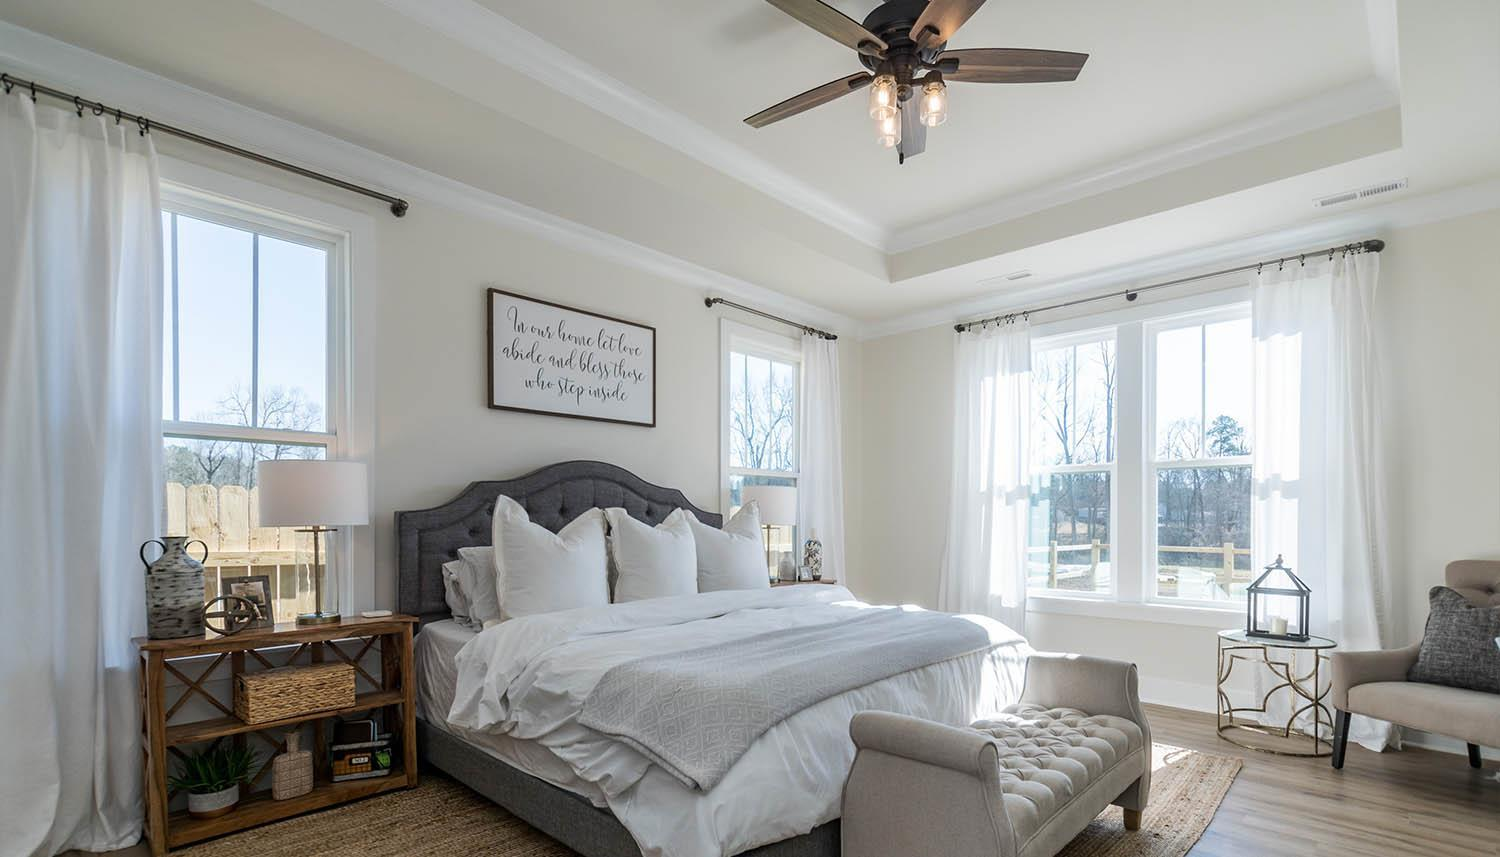 Bedroom featured in the Middleton  By Dan Ryan Builders in Raleigh-Durham-Chapel Hill, NC